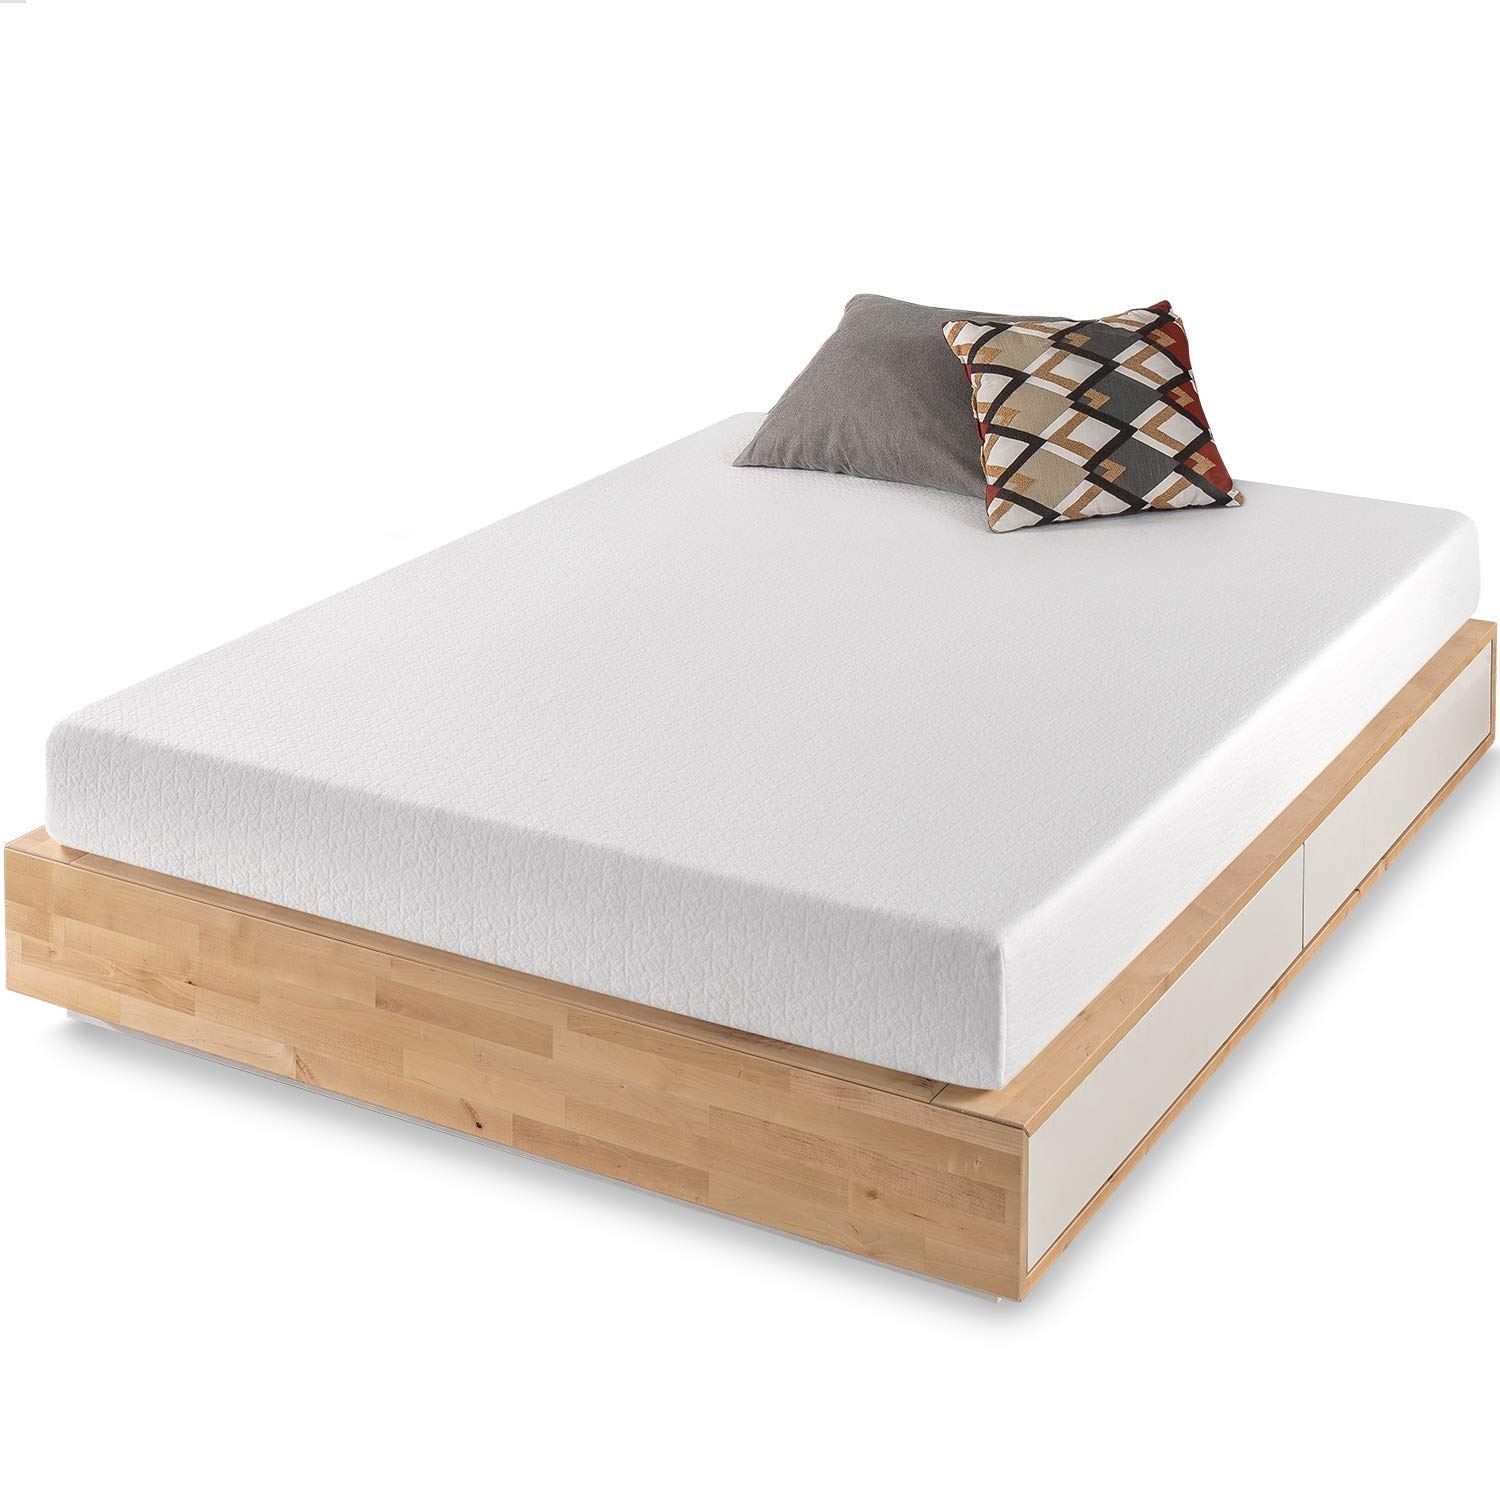 Best Traditional Mattress The Best Firm Mattress Brands And Buying Guide For 2019